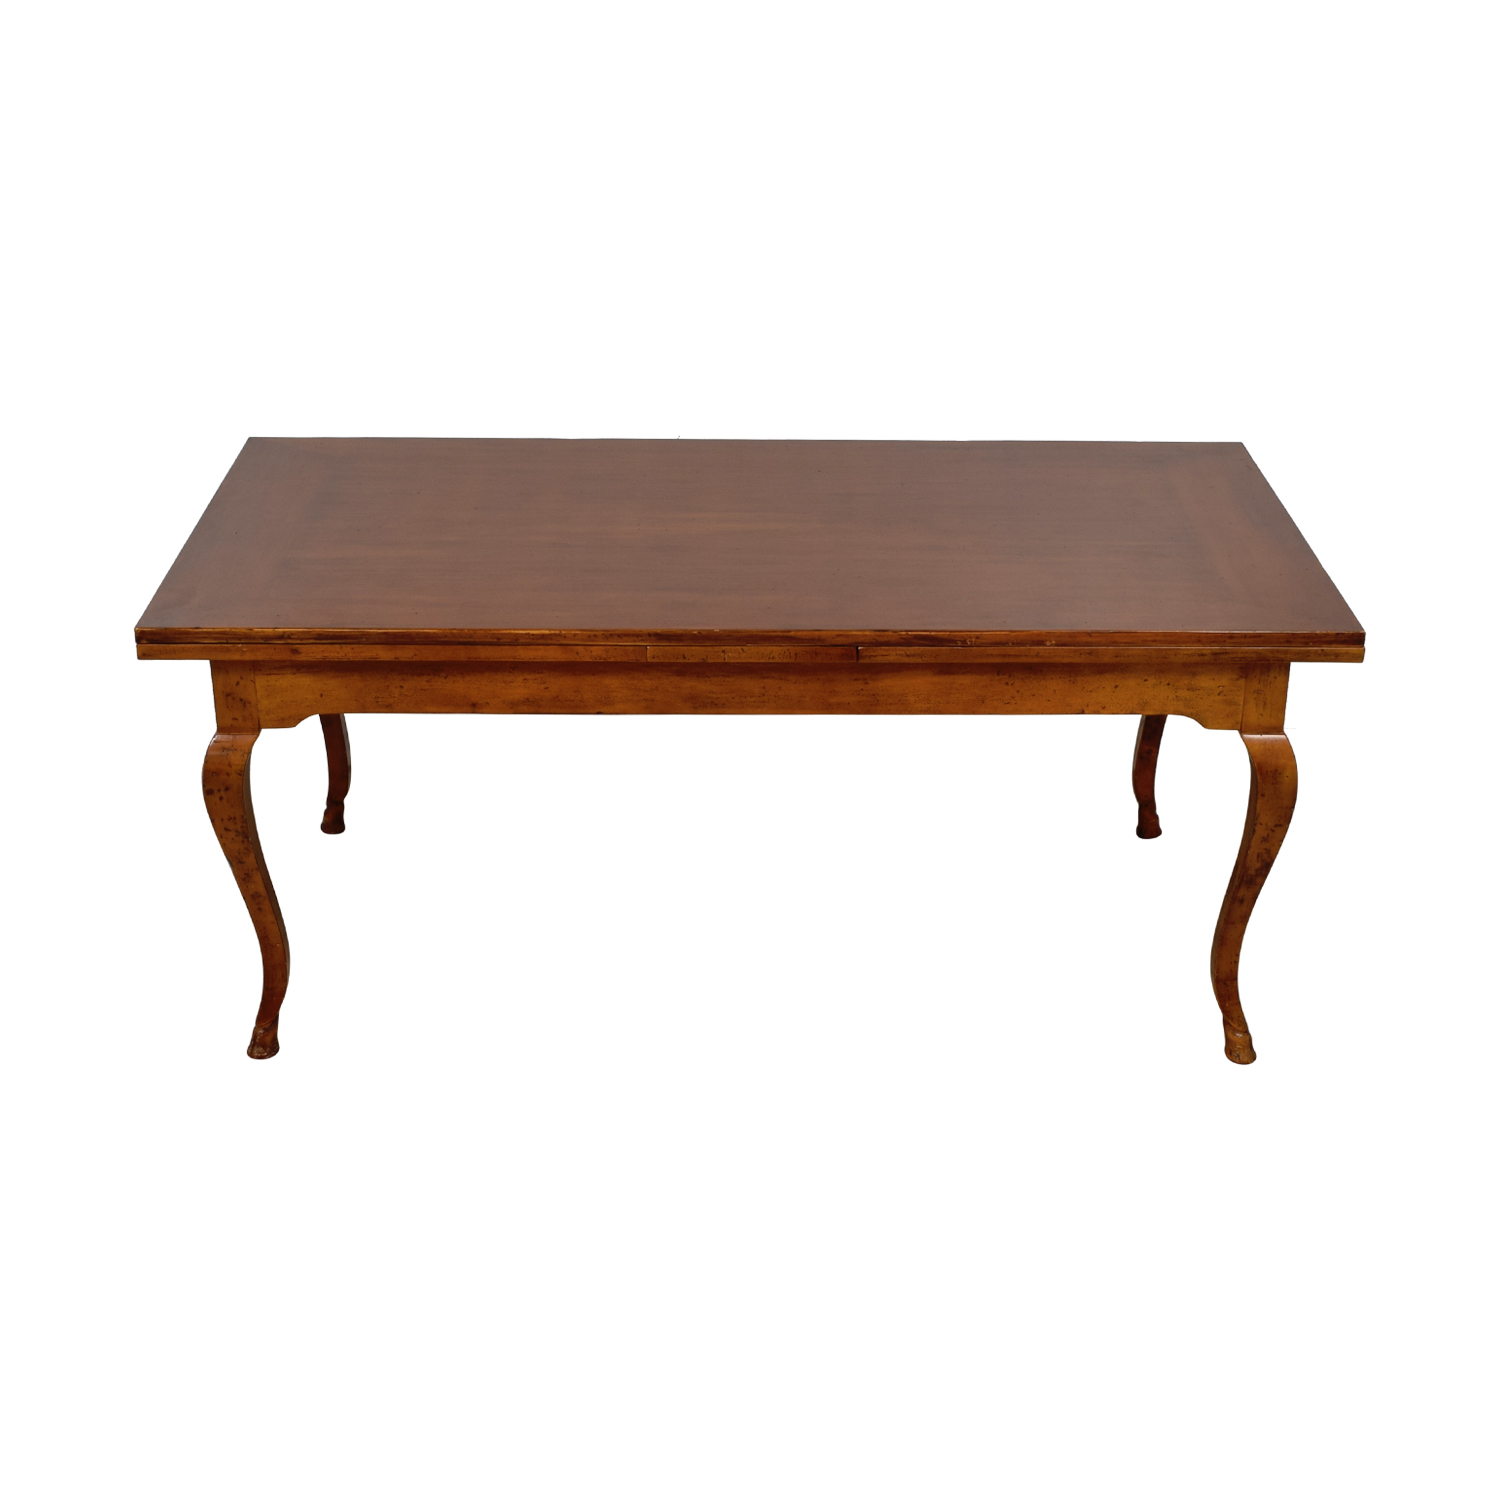 Bloomingdale's Bloomingdale's Wood Dining Table